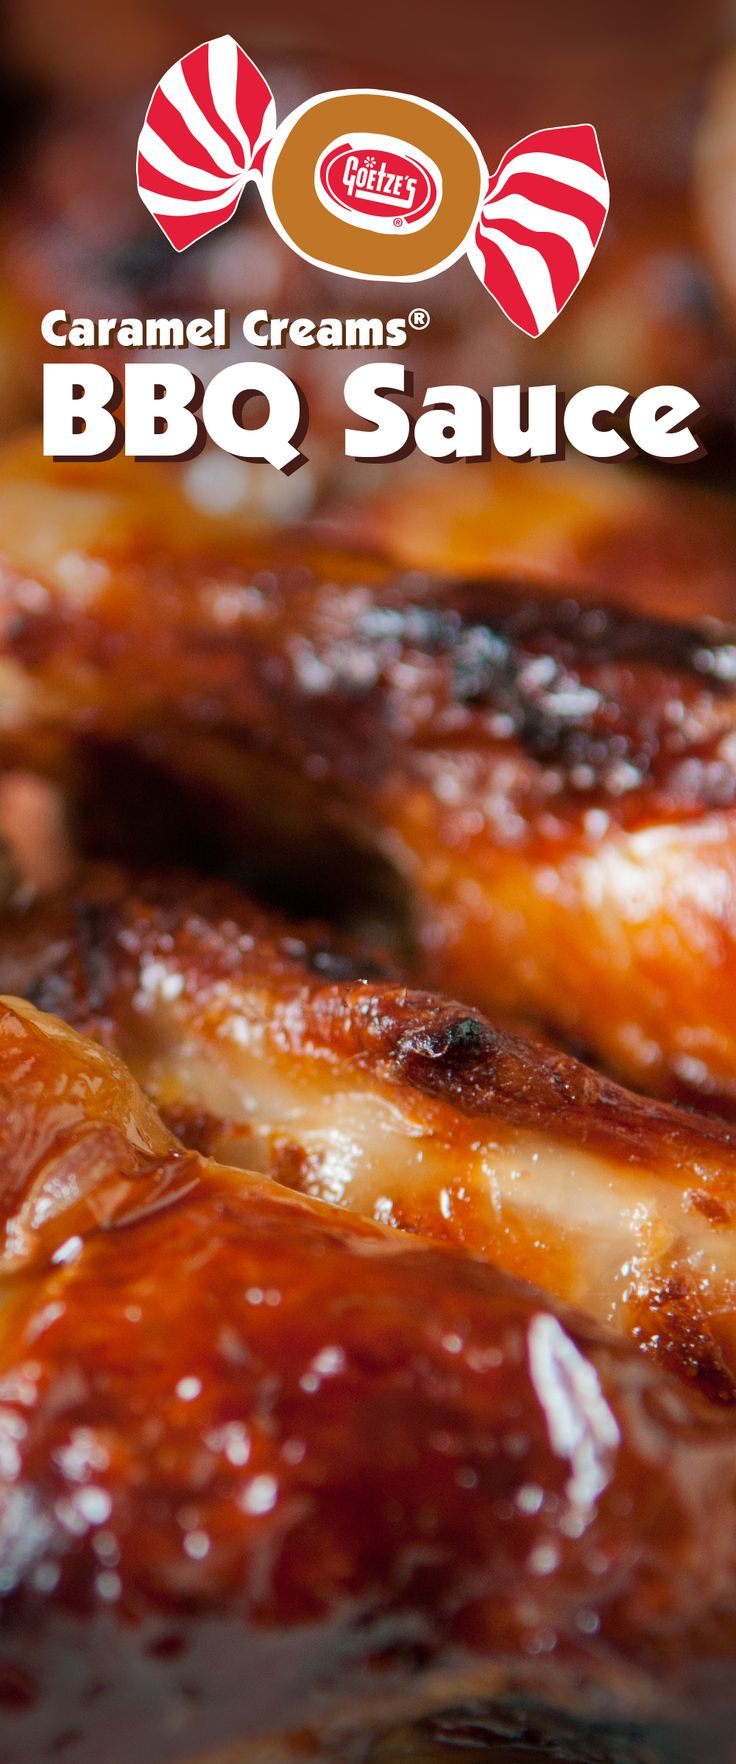 Sweet & Savory! Caramel BBQ Sauce Recipe Perfect for summer cookouts!